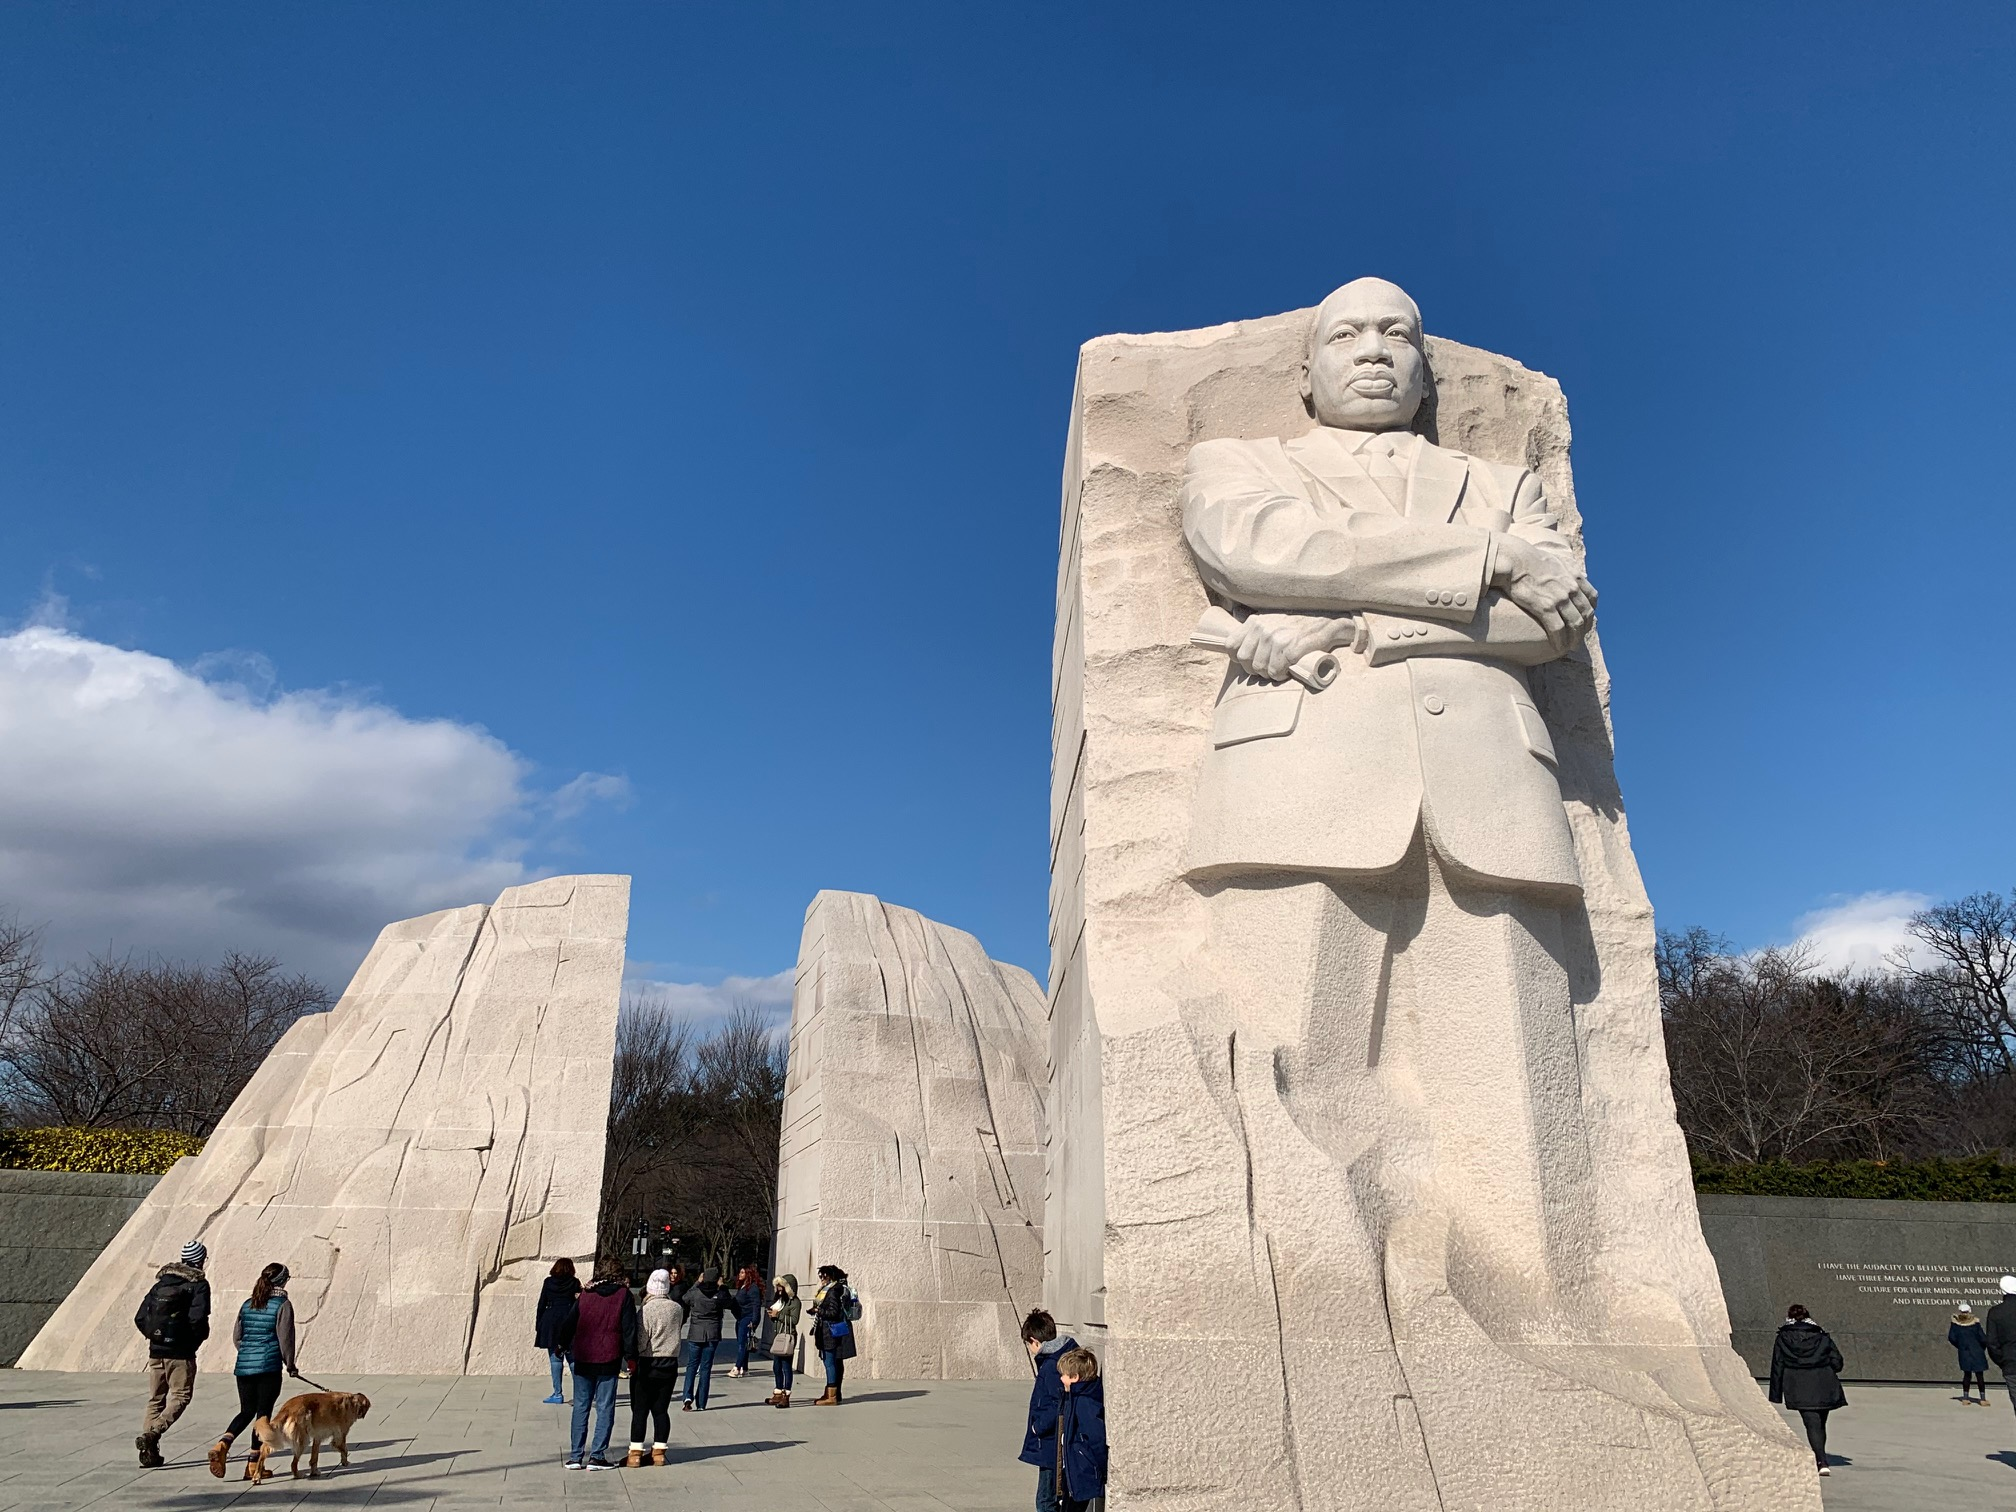 5 Quick Tips to Visit the Martin Luther King Jr. Memorial